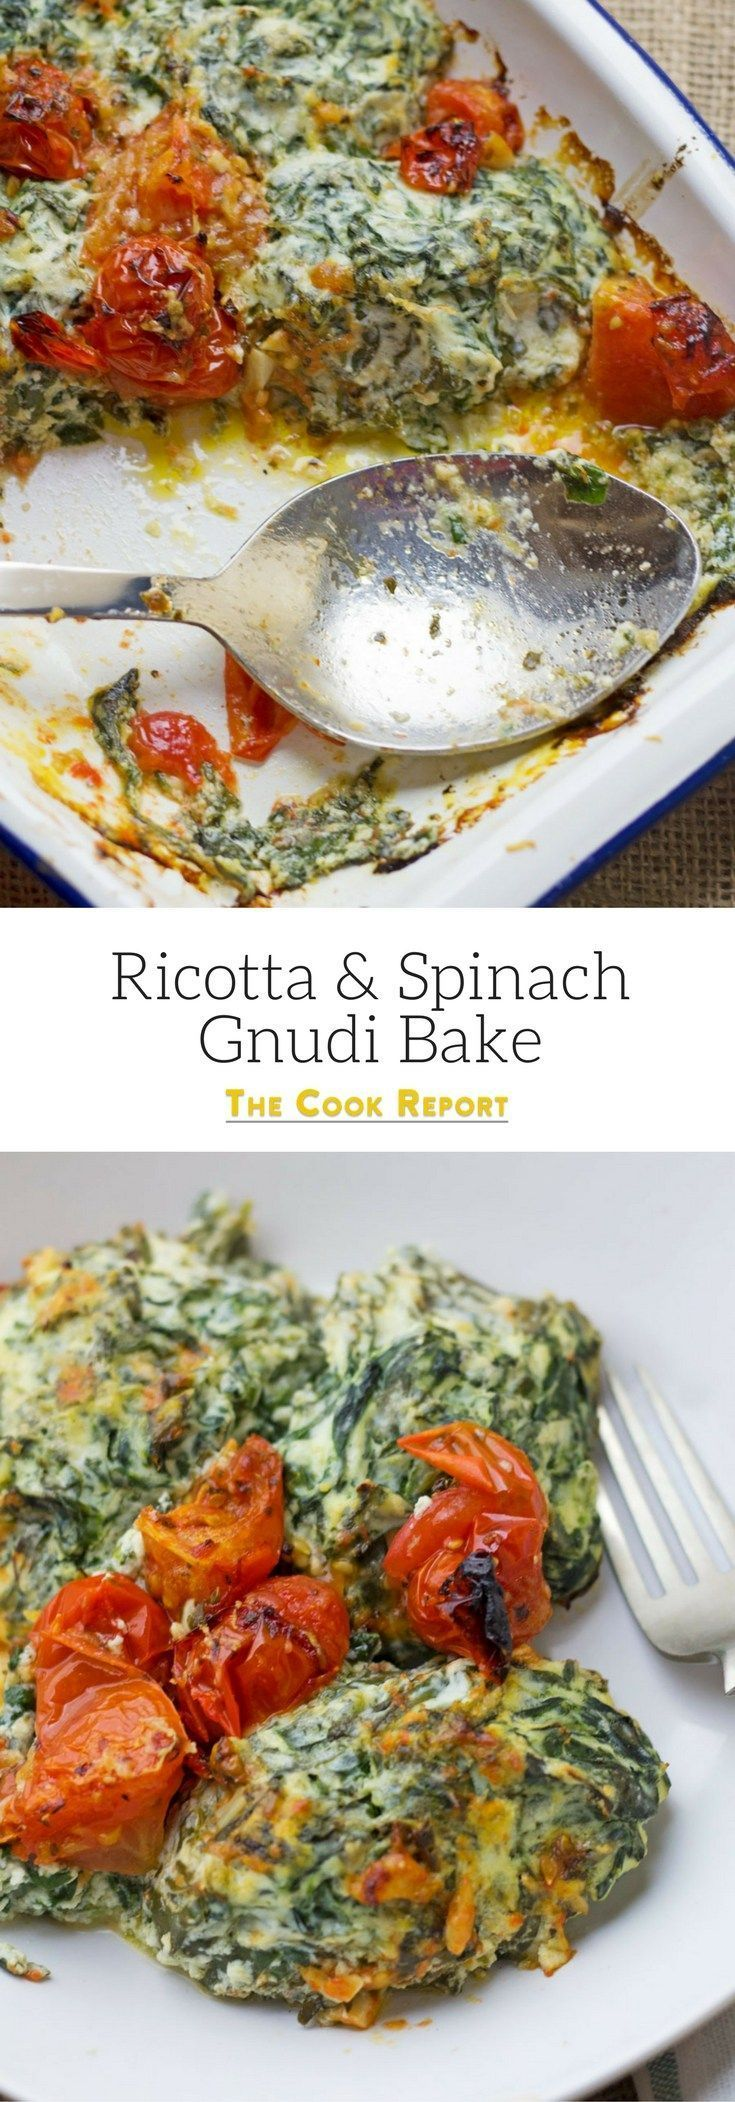 Gnudi are like the inside of spinach and ricotta ravioli. They're quick, easy and healthy. This dish tastes amazing served with a simple garlic bread.